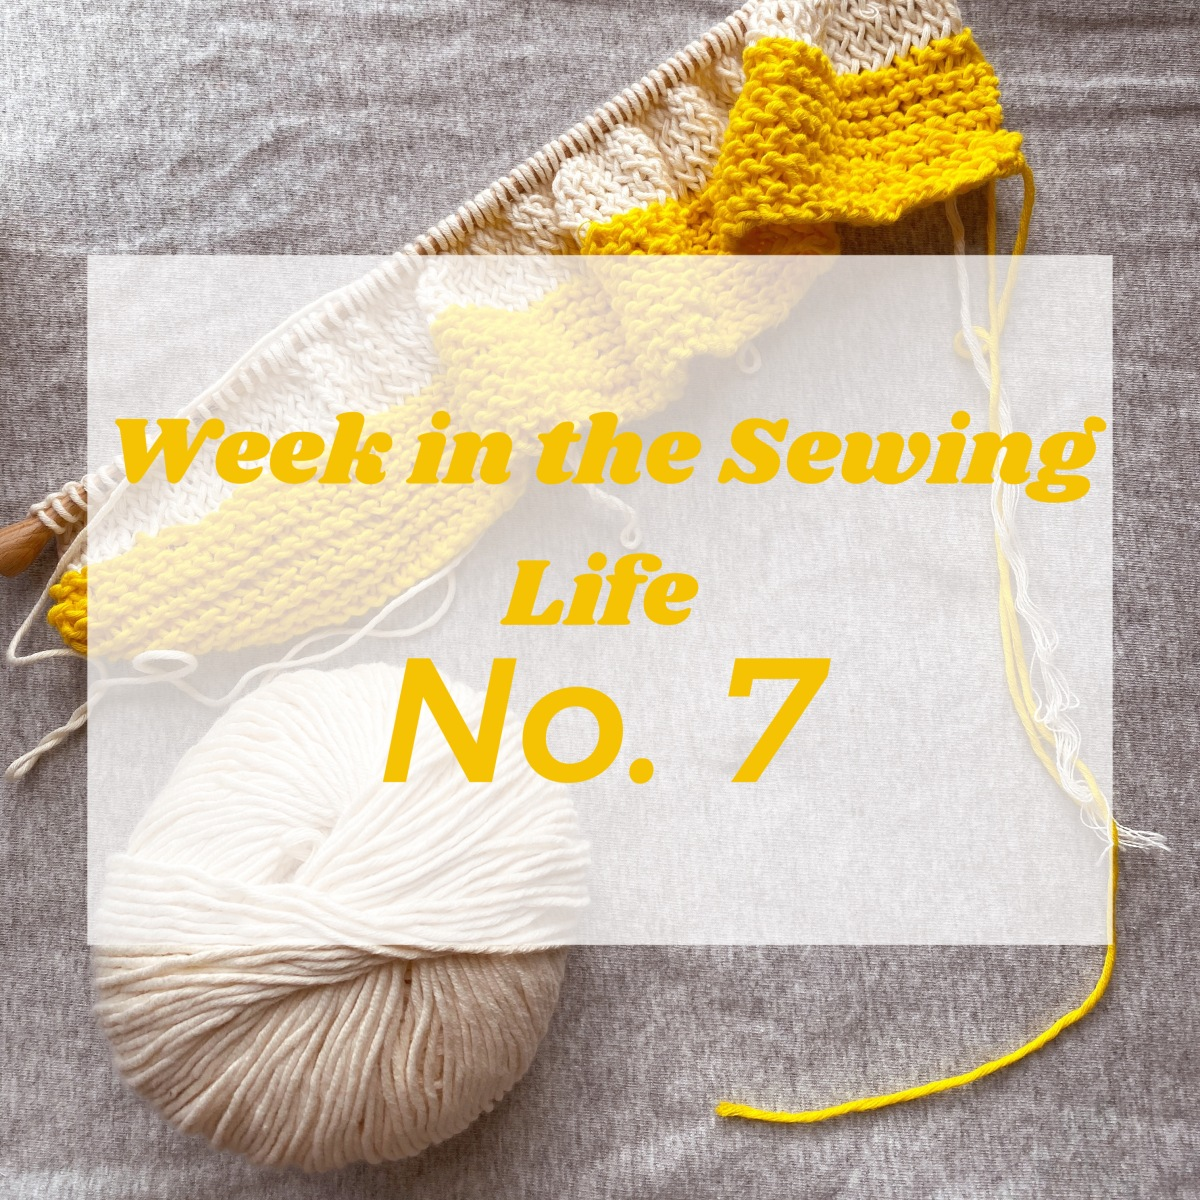 Week in the Sewing Life No.7